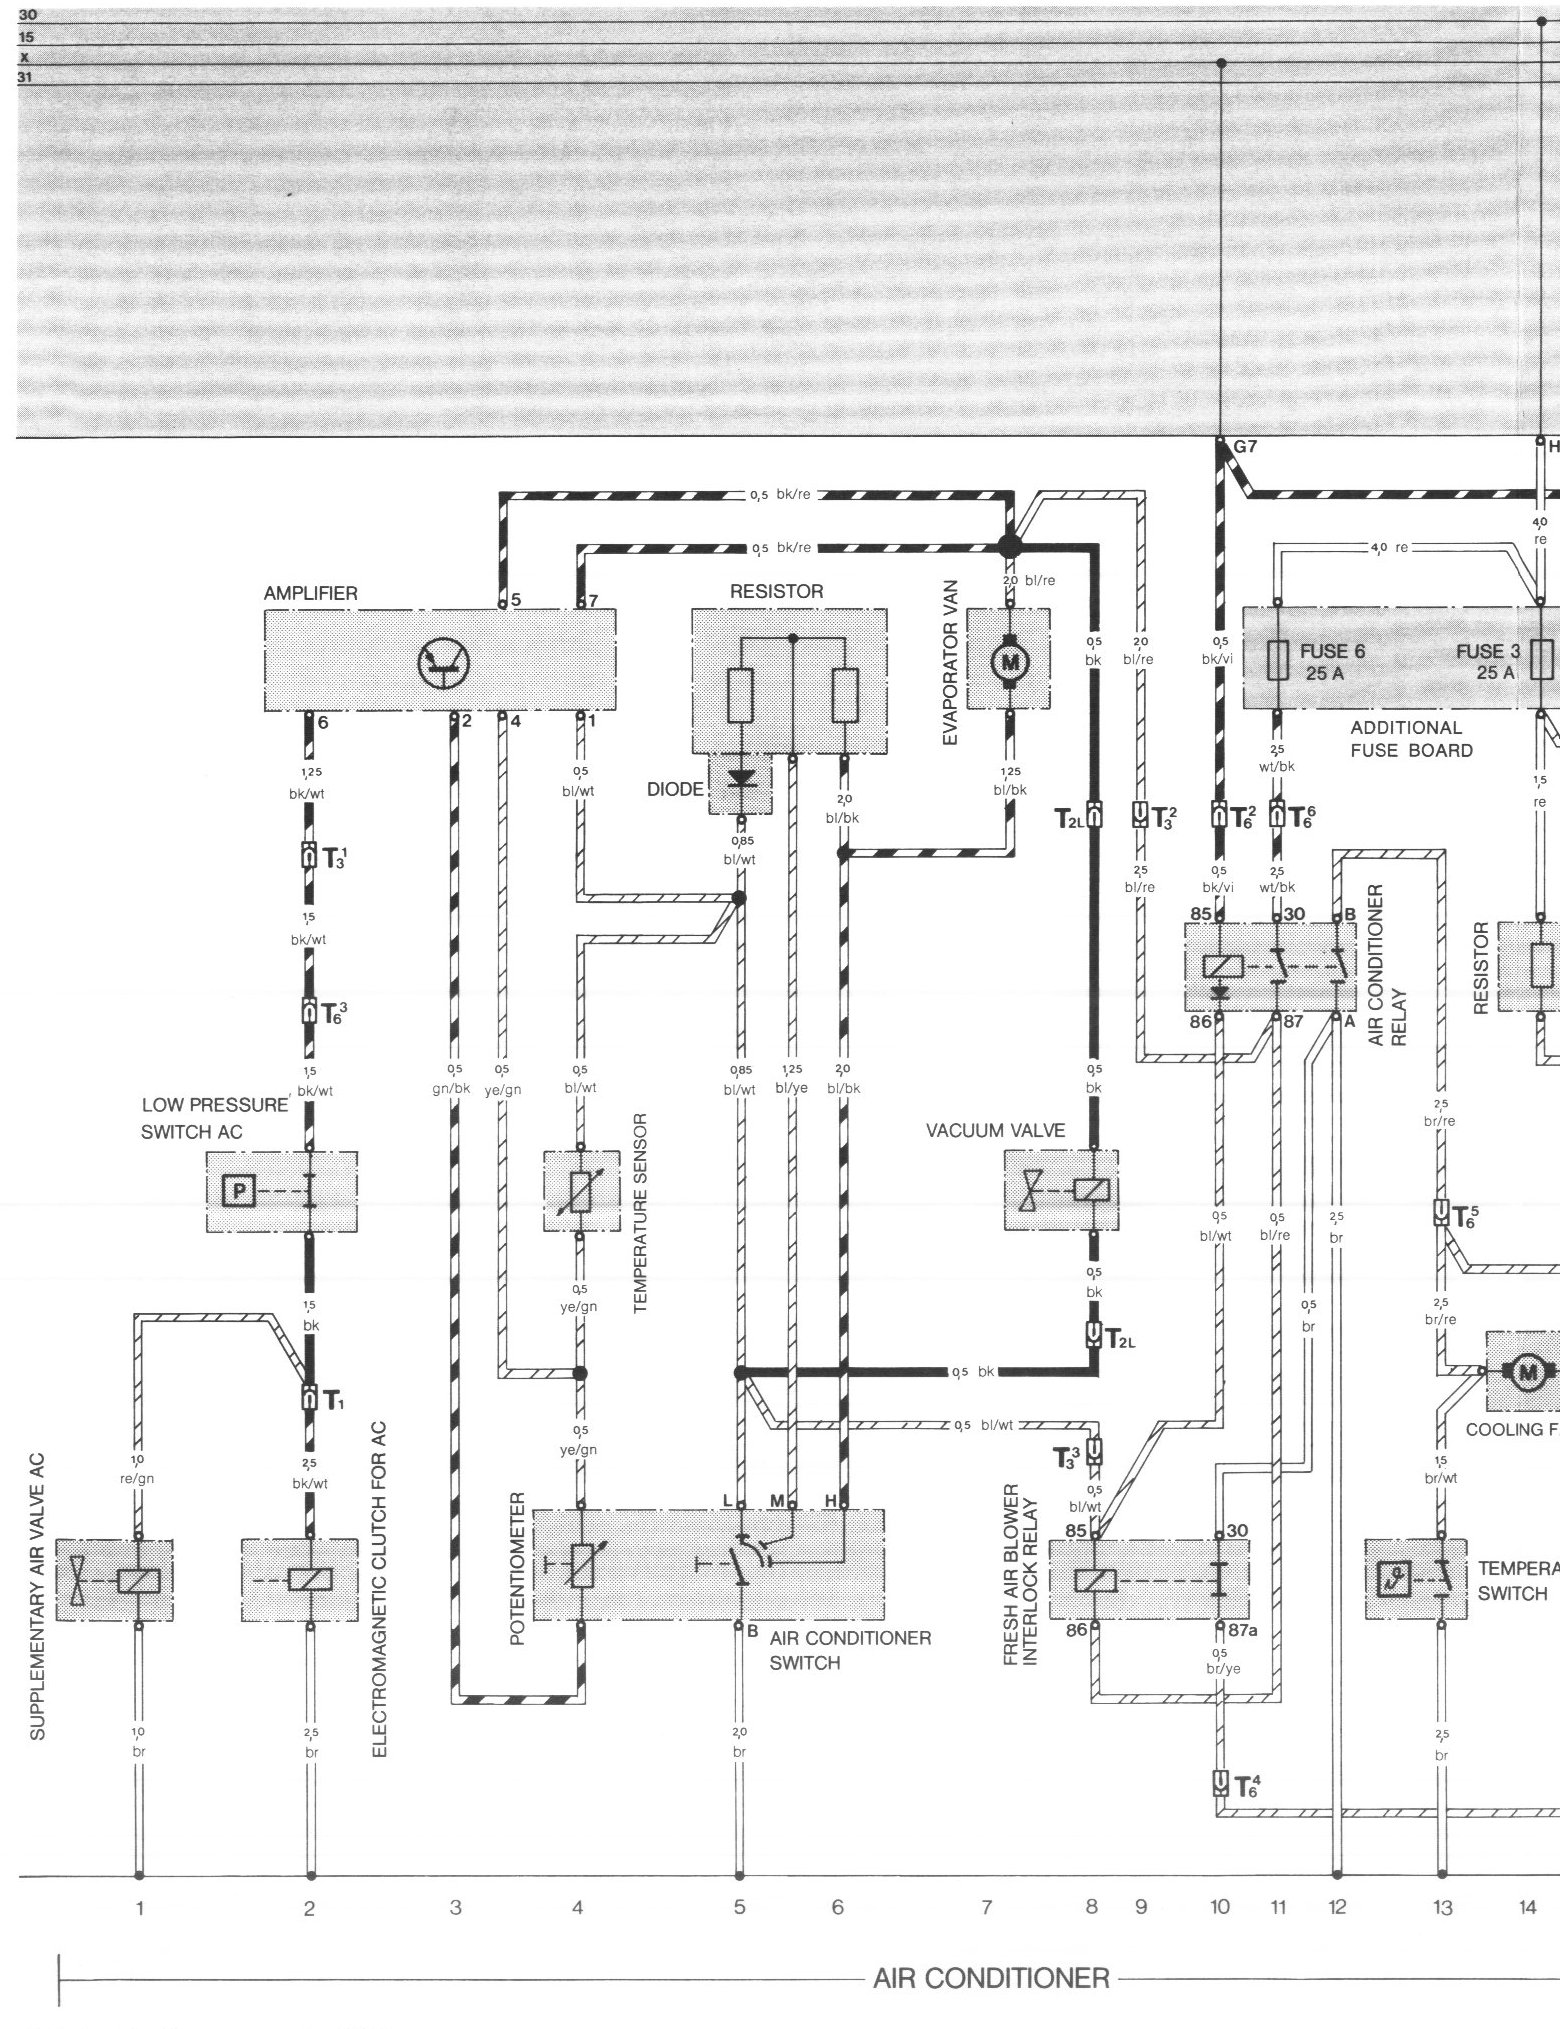 944_84_AC_1 pelican parts porsche 924 944 electrical diagrams 1987 porsche 944 wiring diagram at readyjetset.co